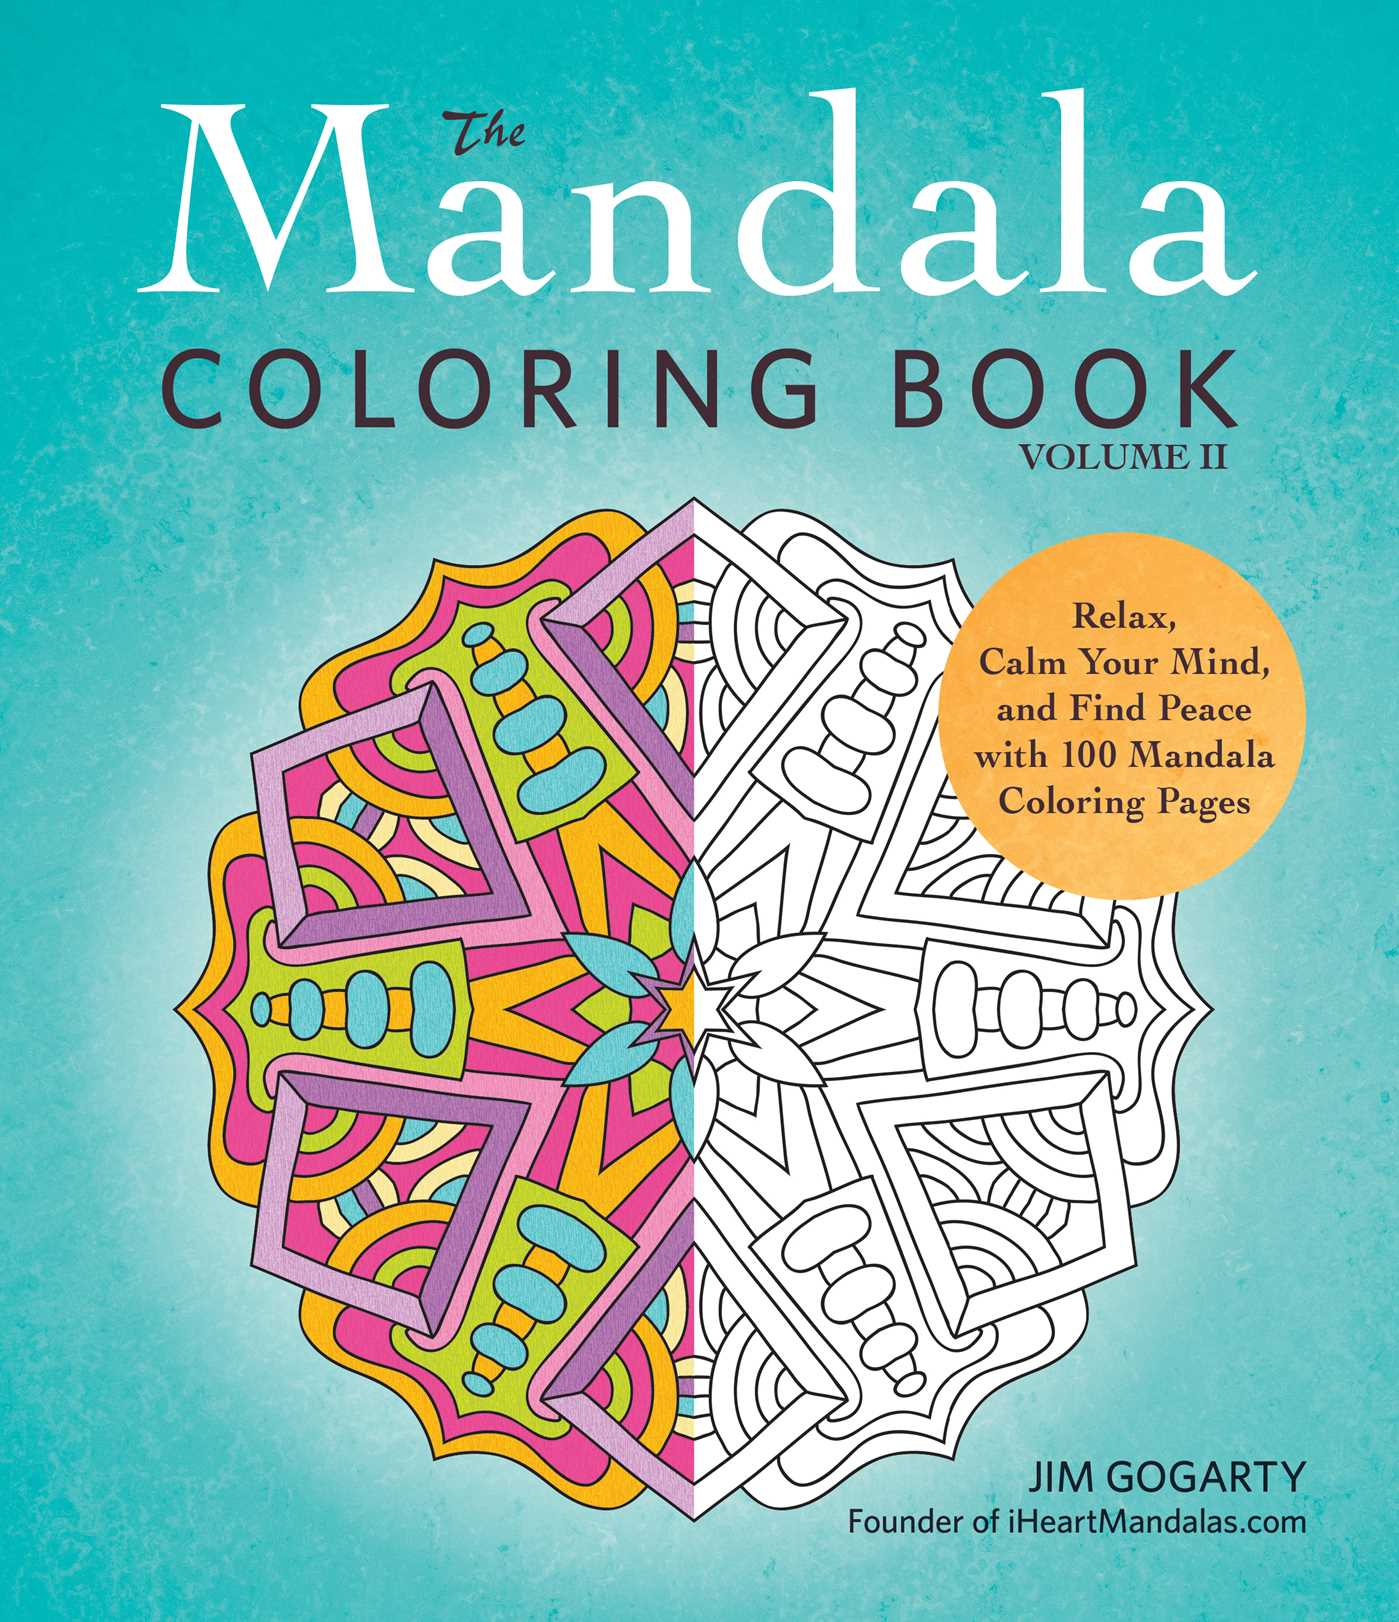 The Mandala Coloring Book Volume Ii Book By Jim Gogarty Official Publisher Page Simon Schuster